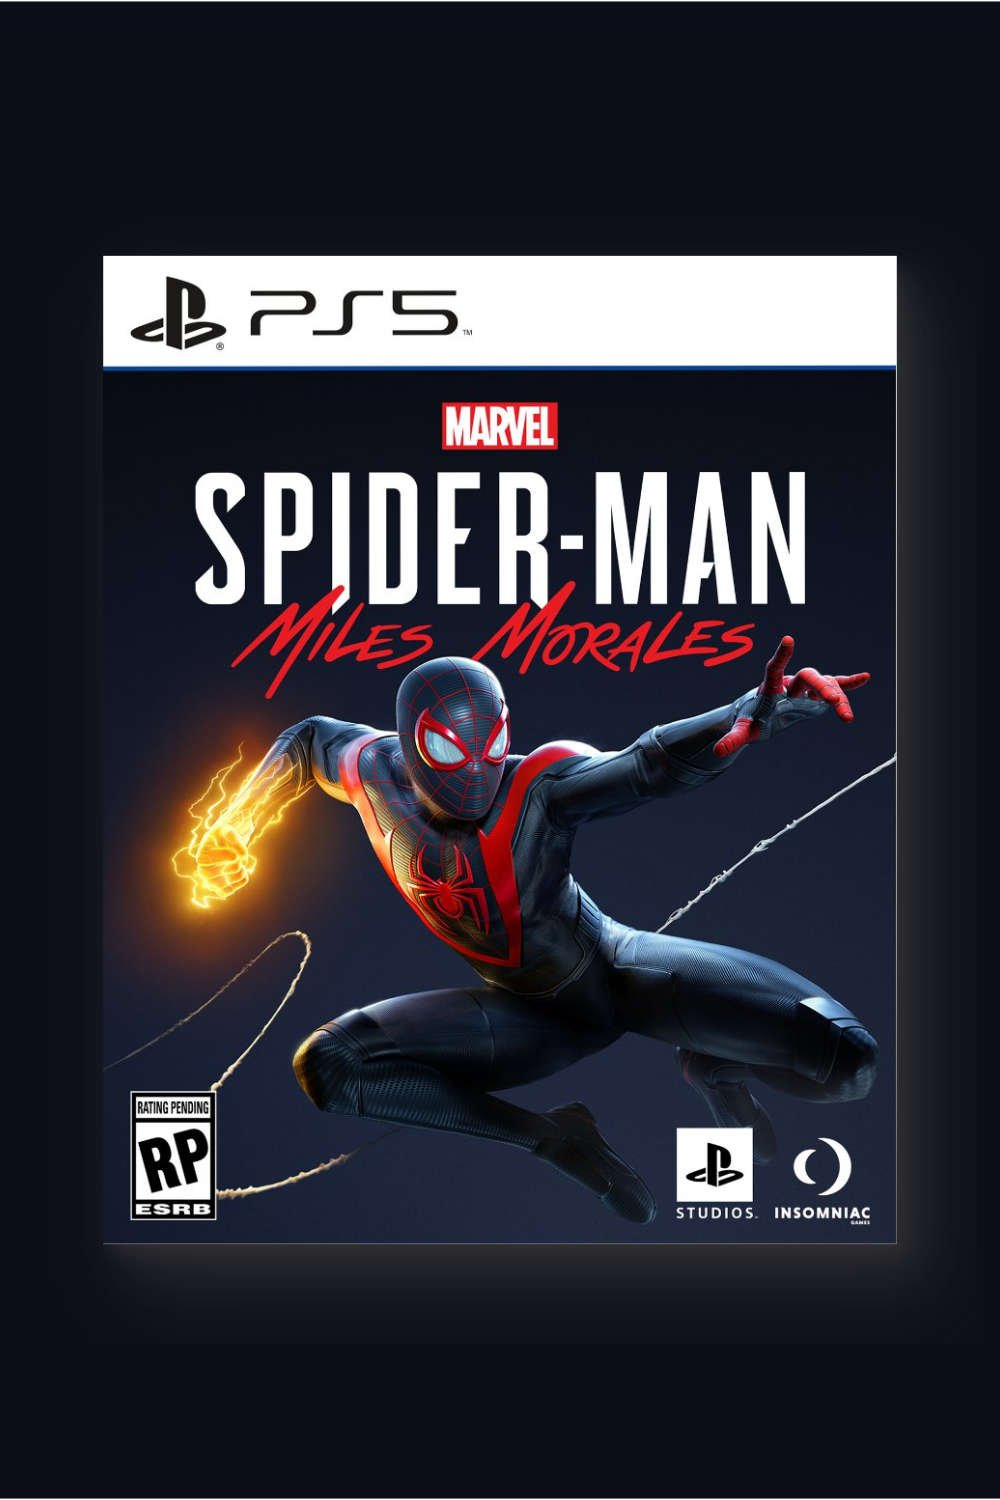 Insomniac Games, Inc - Marvel - Sony Interactive Entertainment Inc